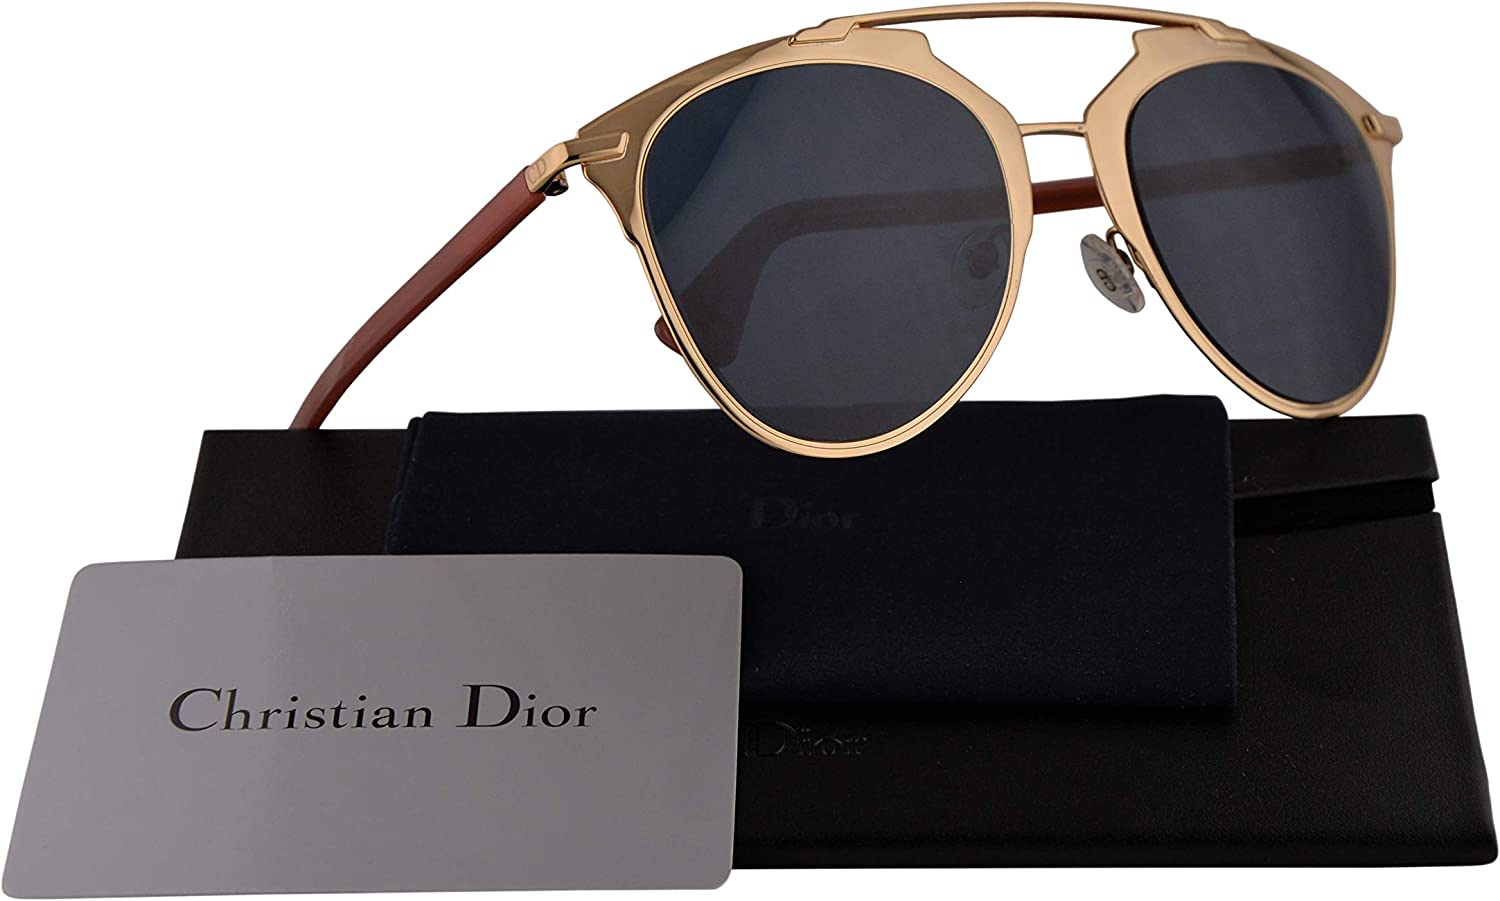 Christian DiorReflected Sunglasses pink gold w bluee Avio Lens TUZKU Dior Reflected